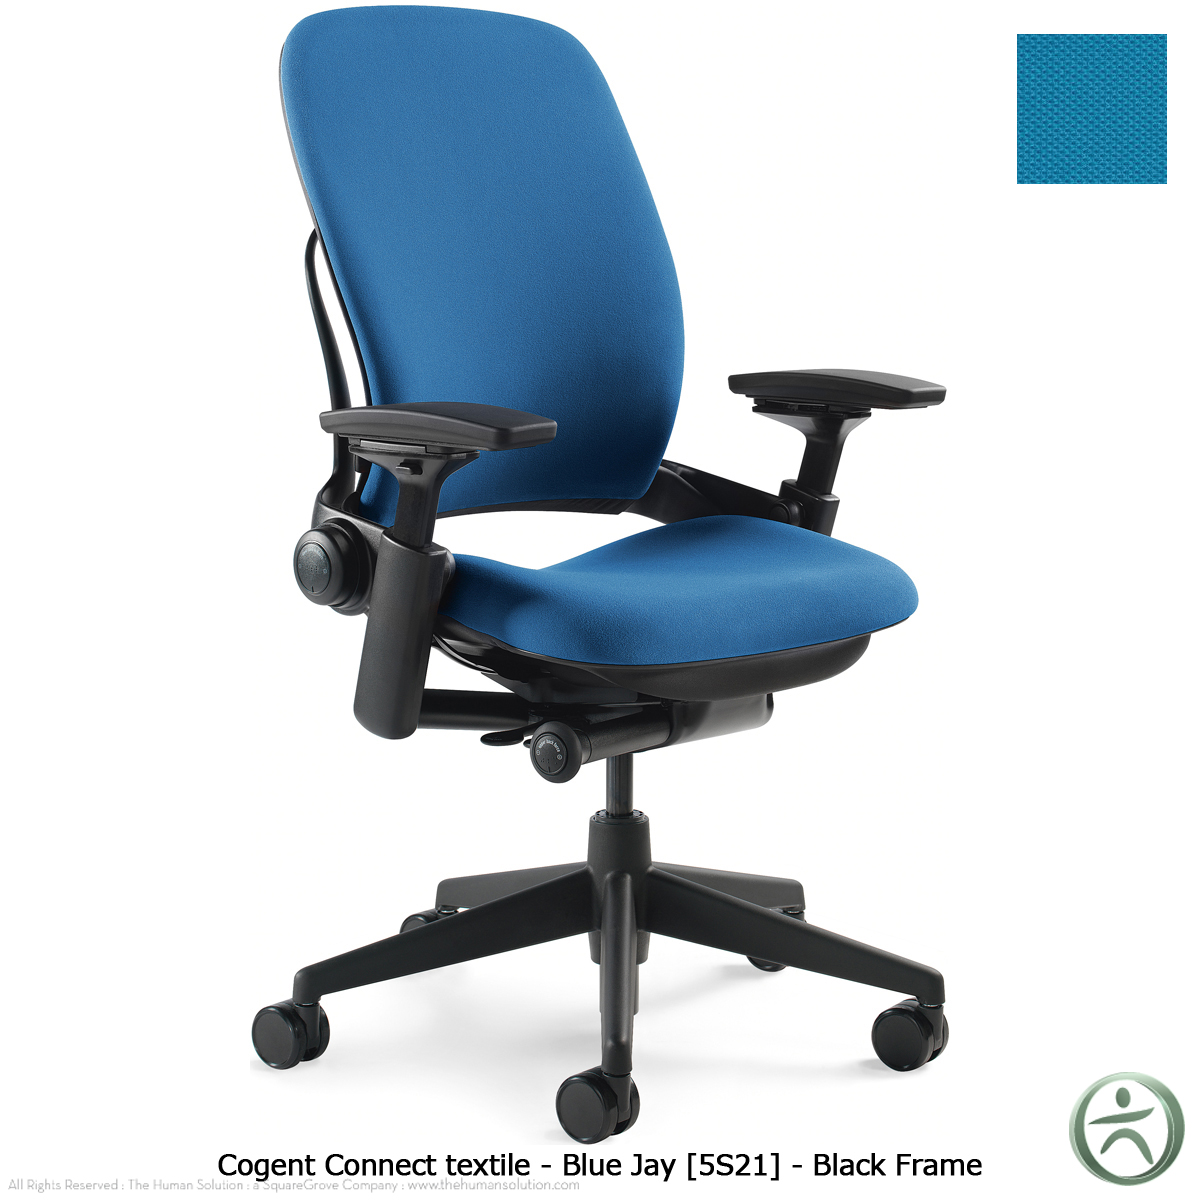 Steelcase leap chair steelcase leap ergonomic office chair - Steelcase leap ergonomic office chair ...